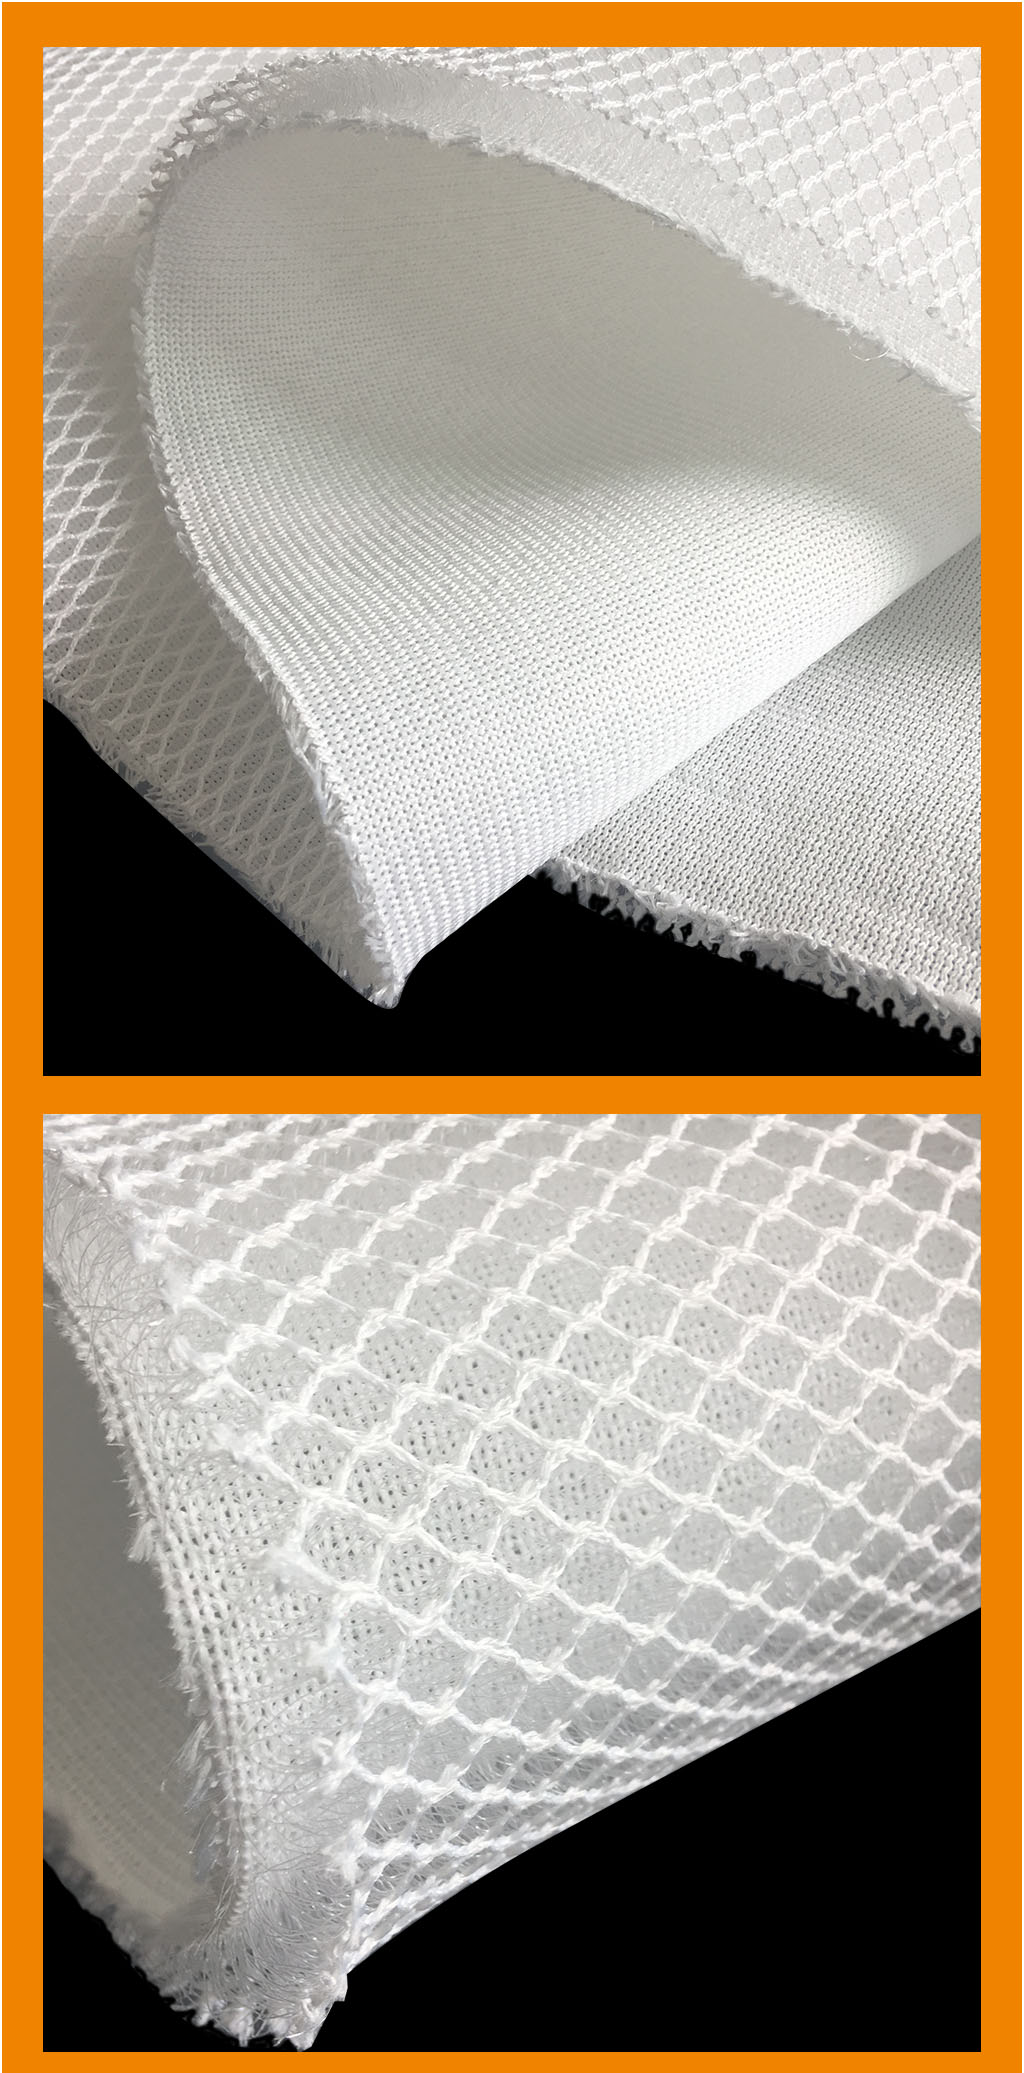 wellcool soft mesh mattress 3d fabric